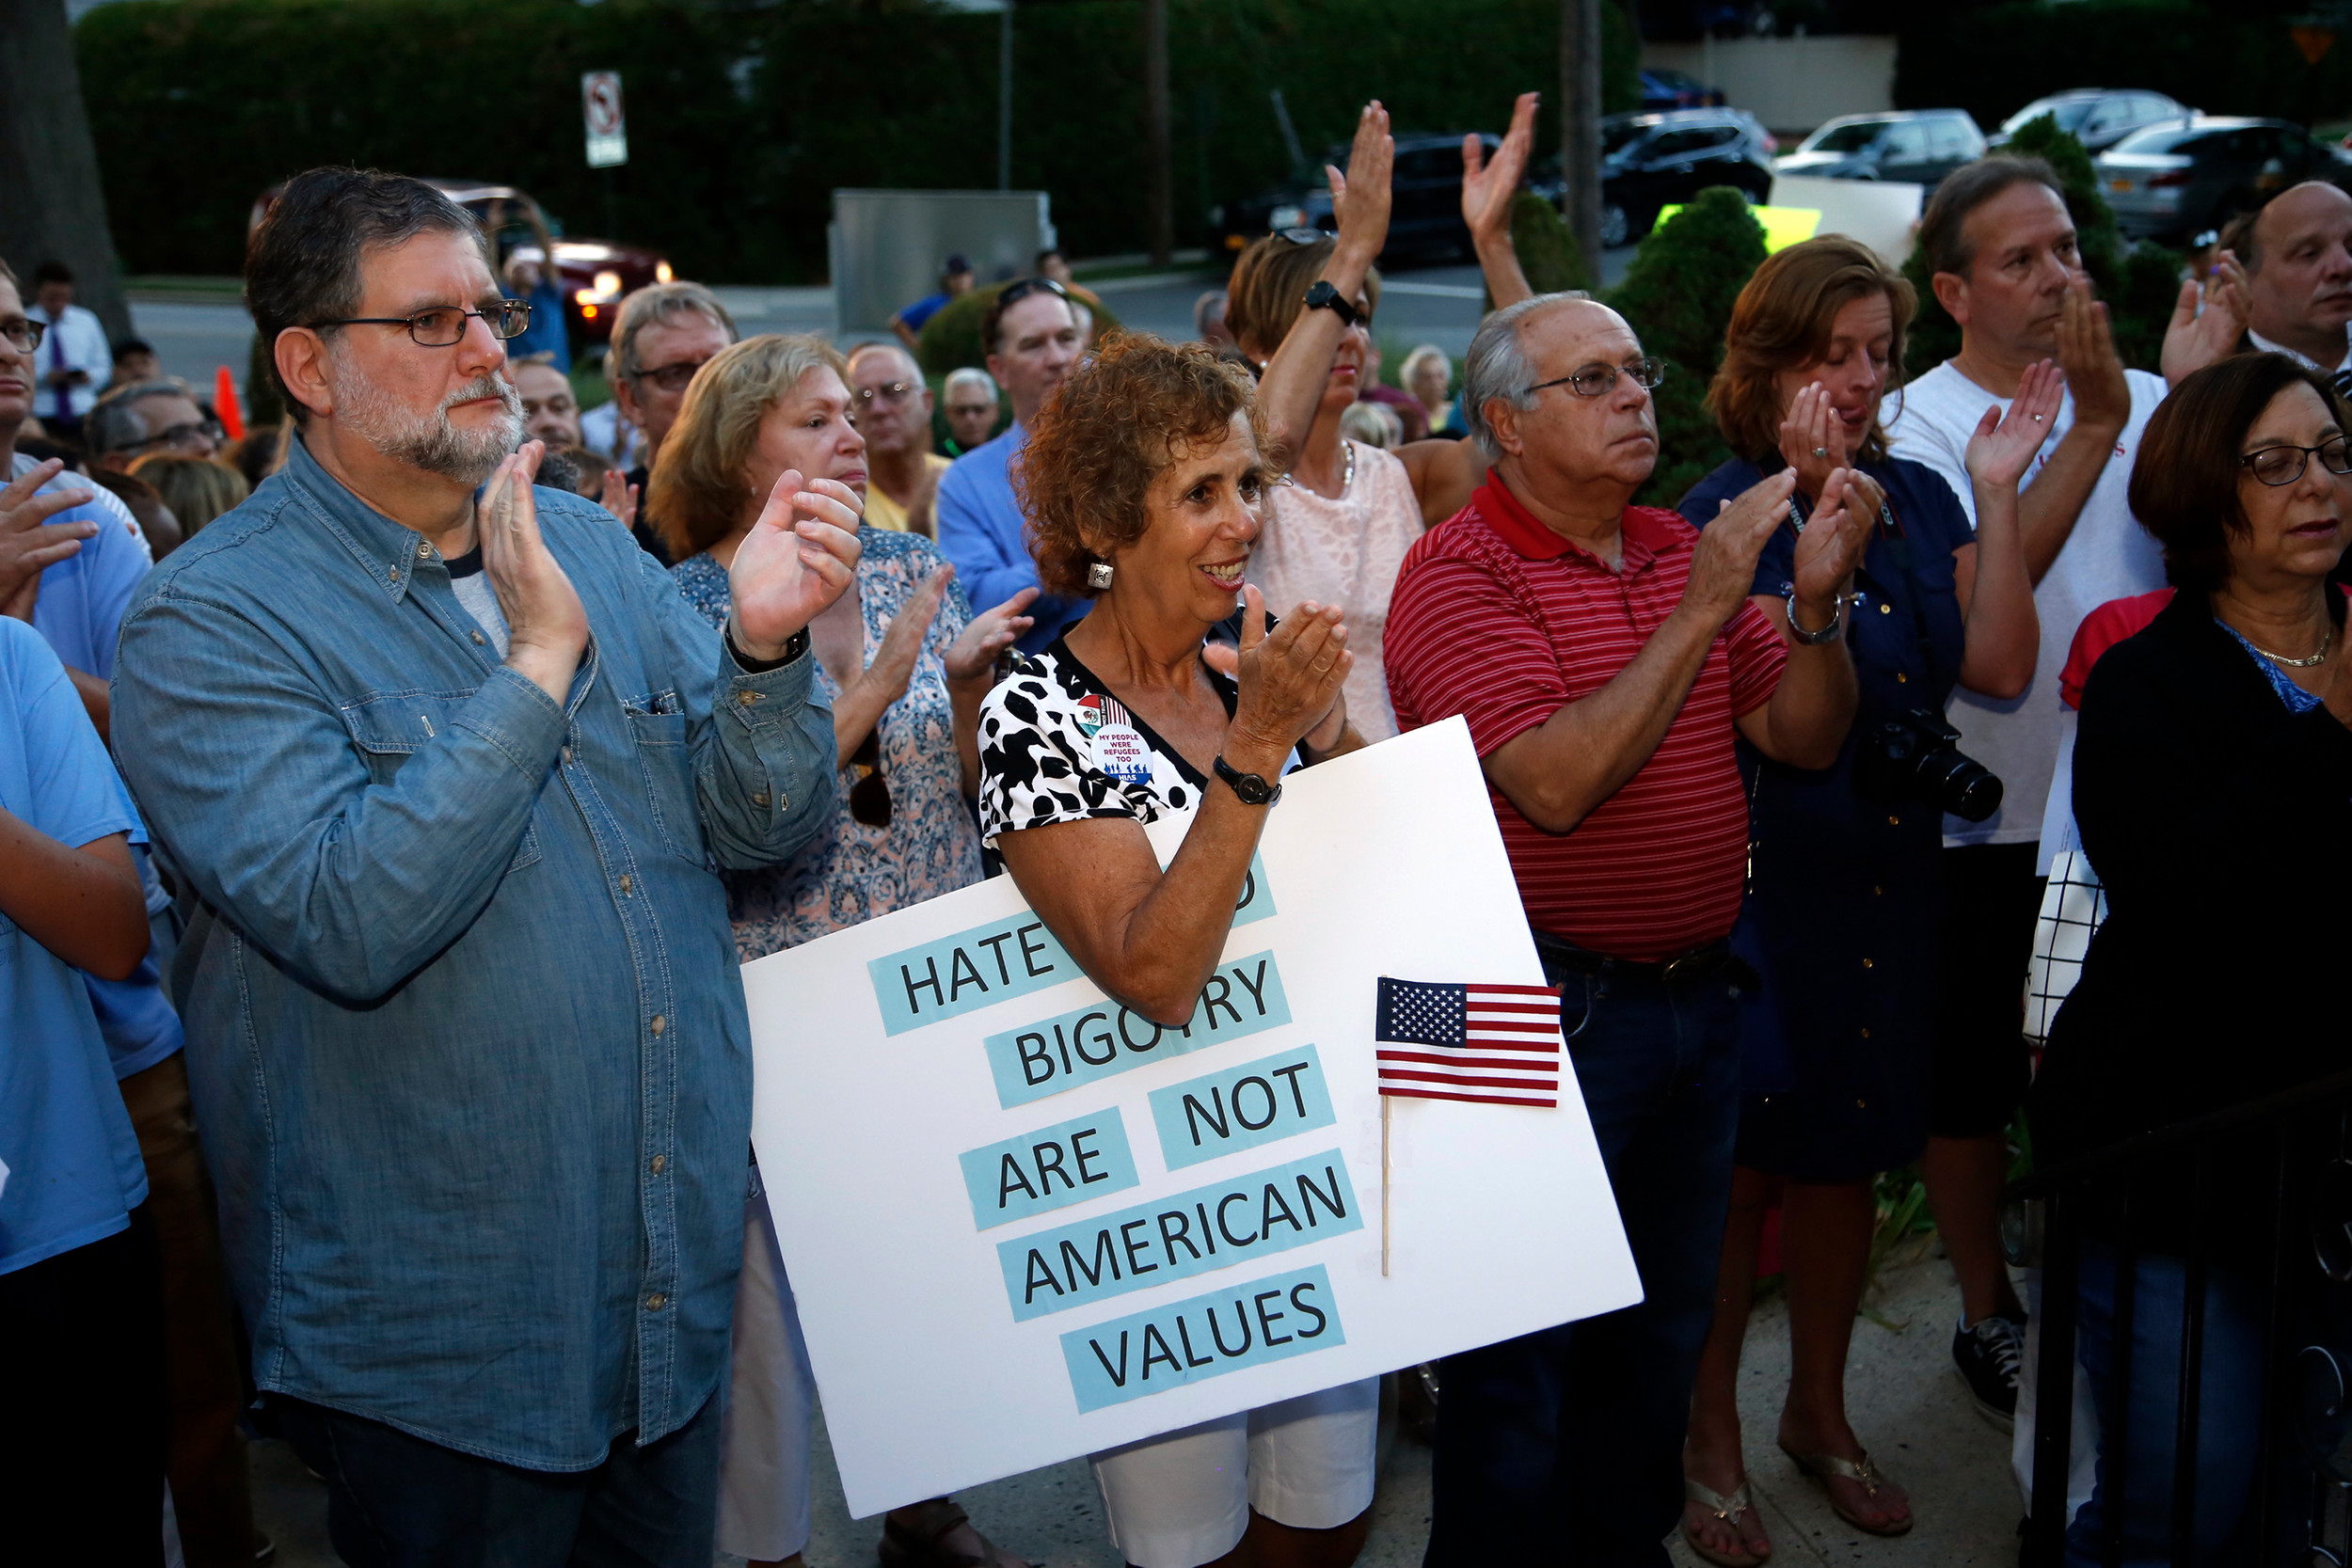 Barbara Sklar, holding her sign, stood beside other residents who denounced hatred and racism at a vigil Thursday night outside Central Synagogue – Beth Emeth in Rockville Centre.